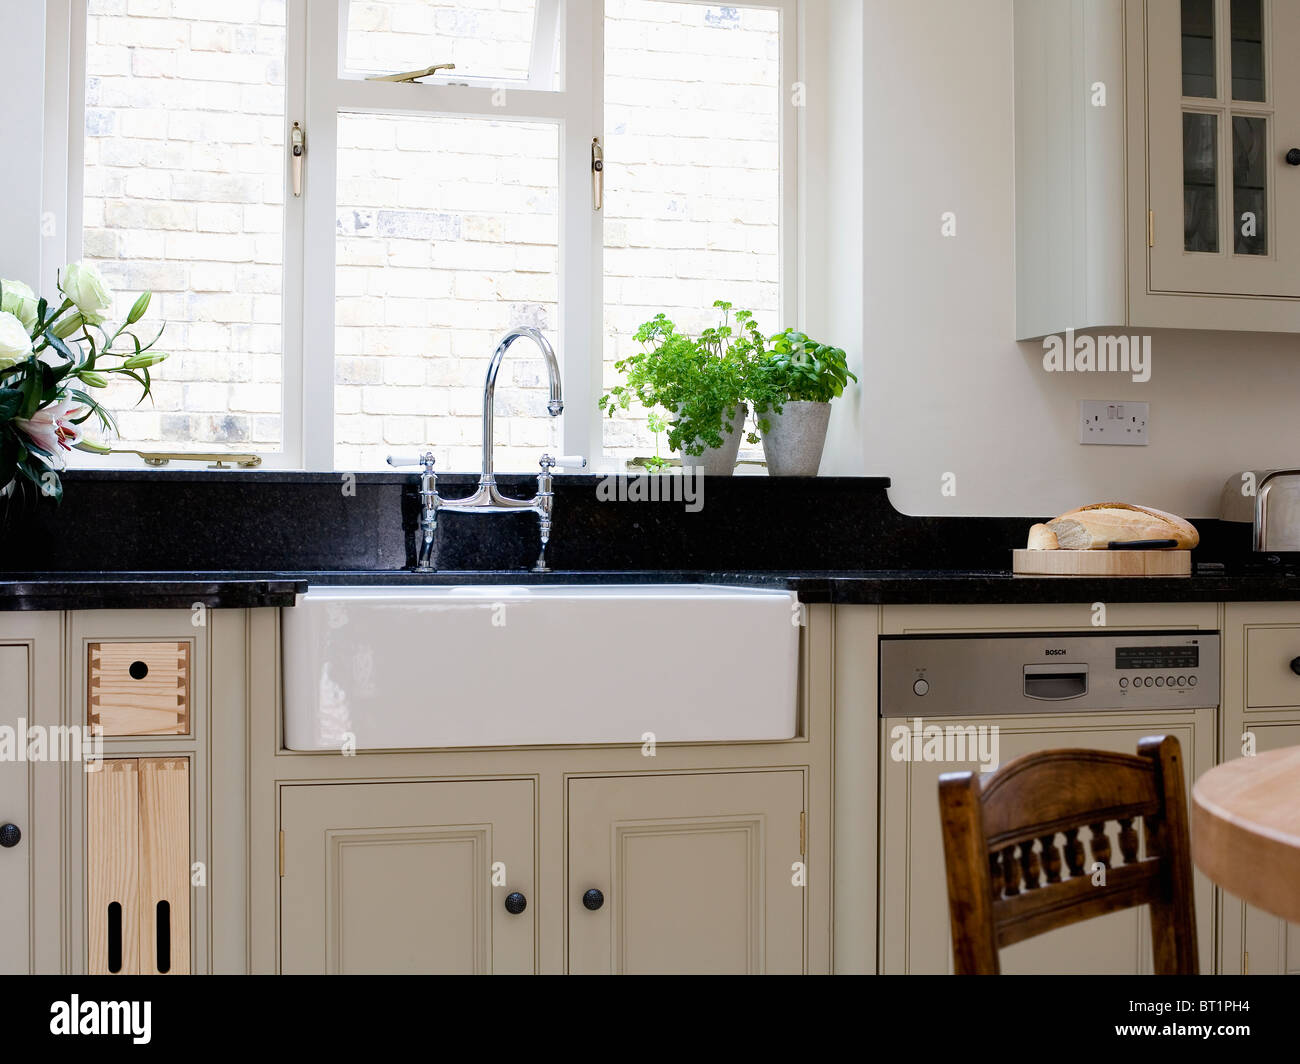 Belfast Sink Below Window In Modern Kitchen Stock Photo Royalty Free Image 32001792 Alamy